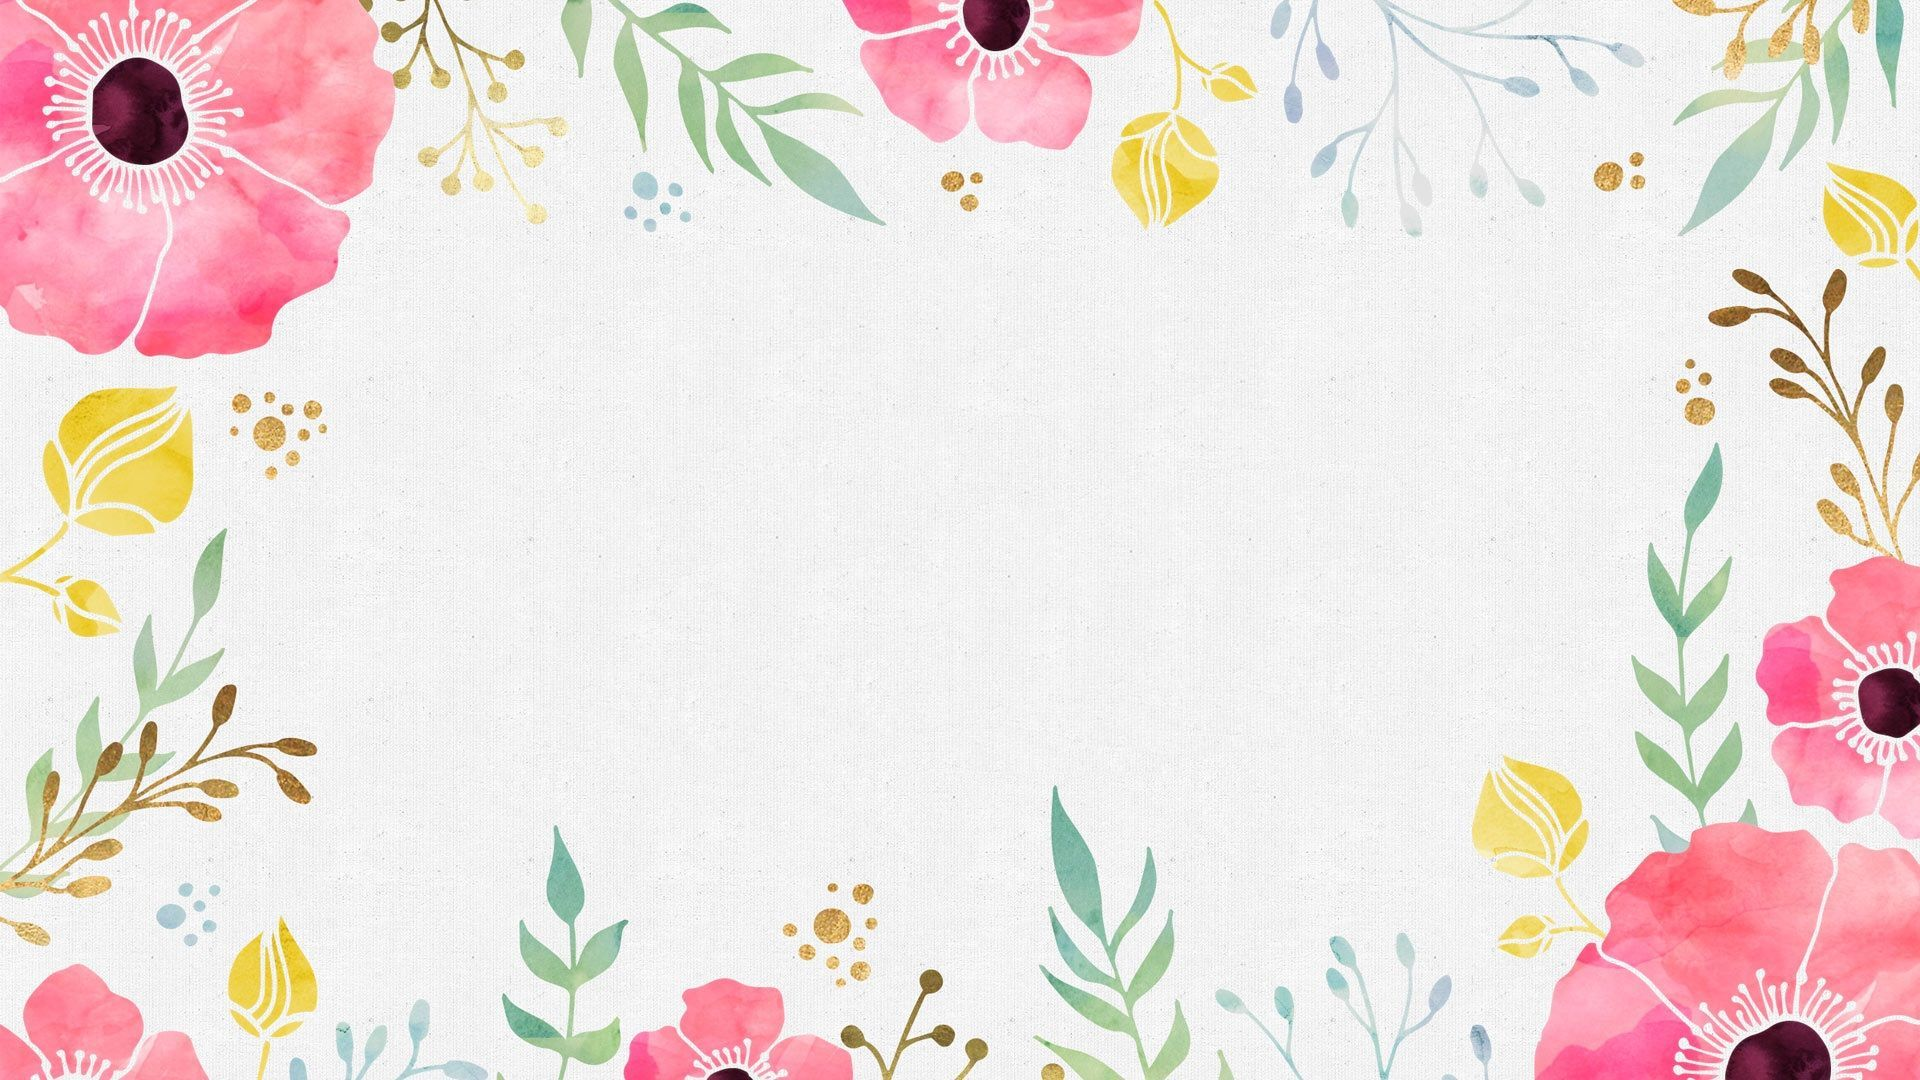 Watercolor Floral Desktop Wallpapers Top Free Watercolor Floral